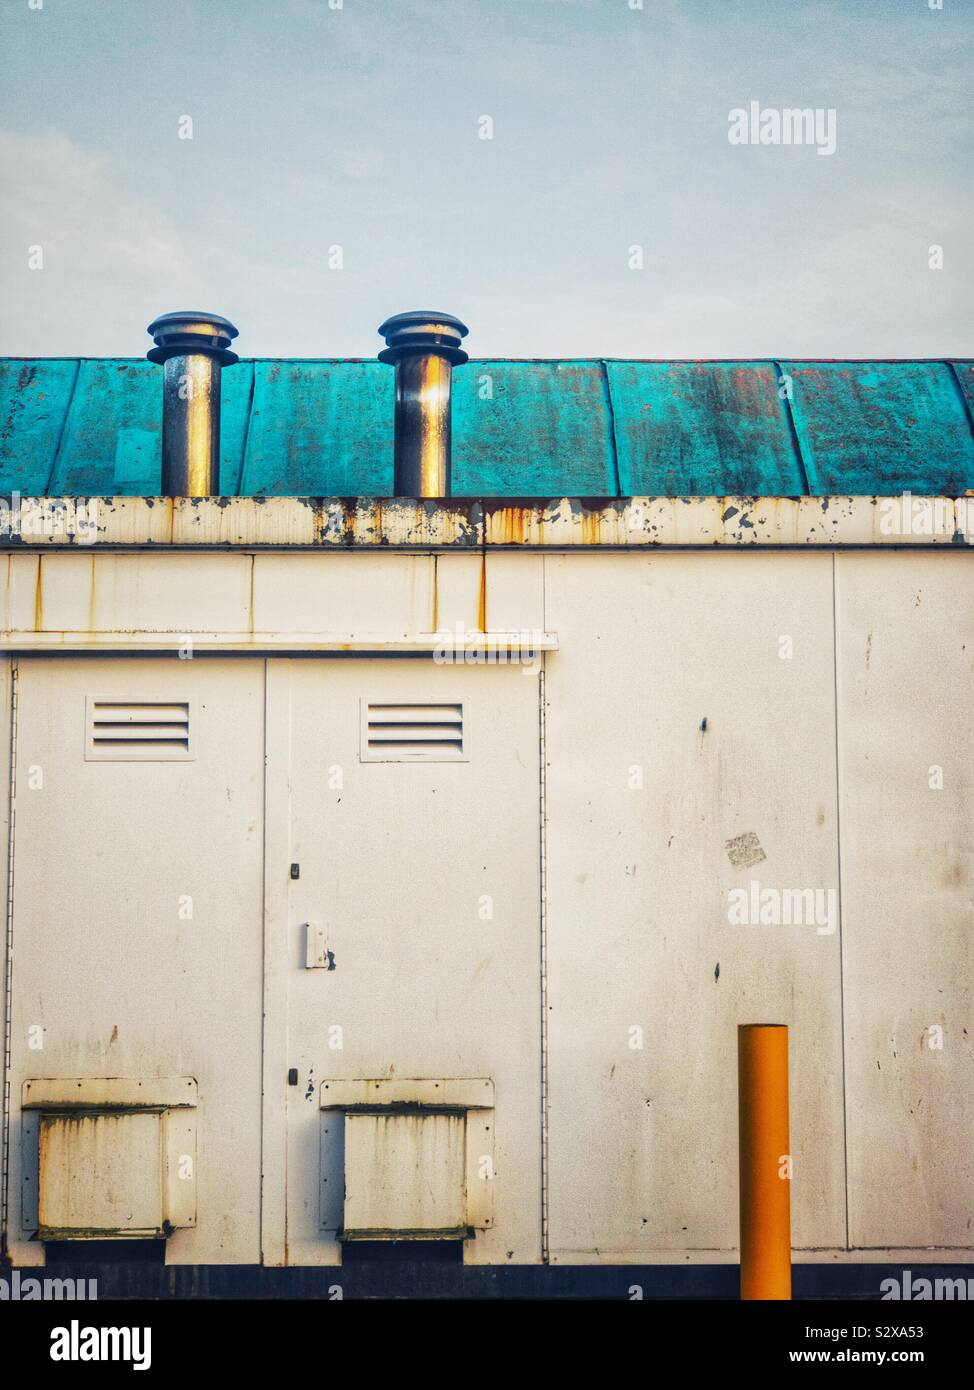 Industrial equipment on side of building. Stock Foto